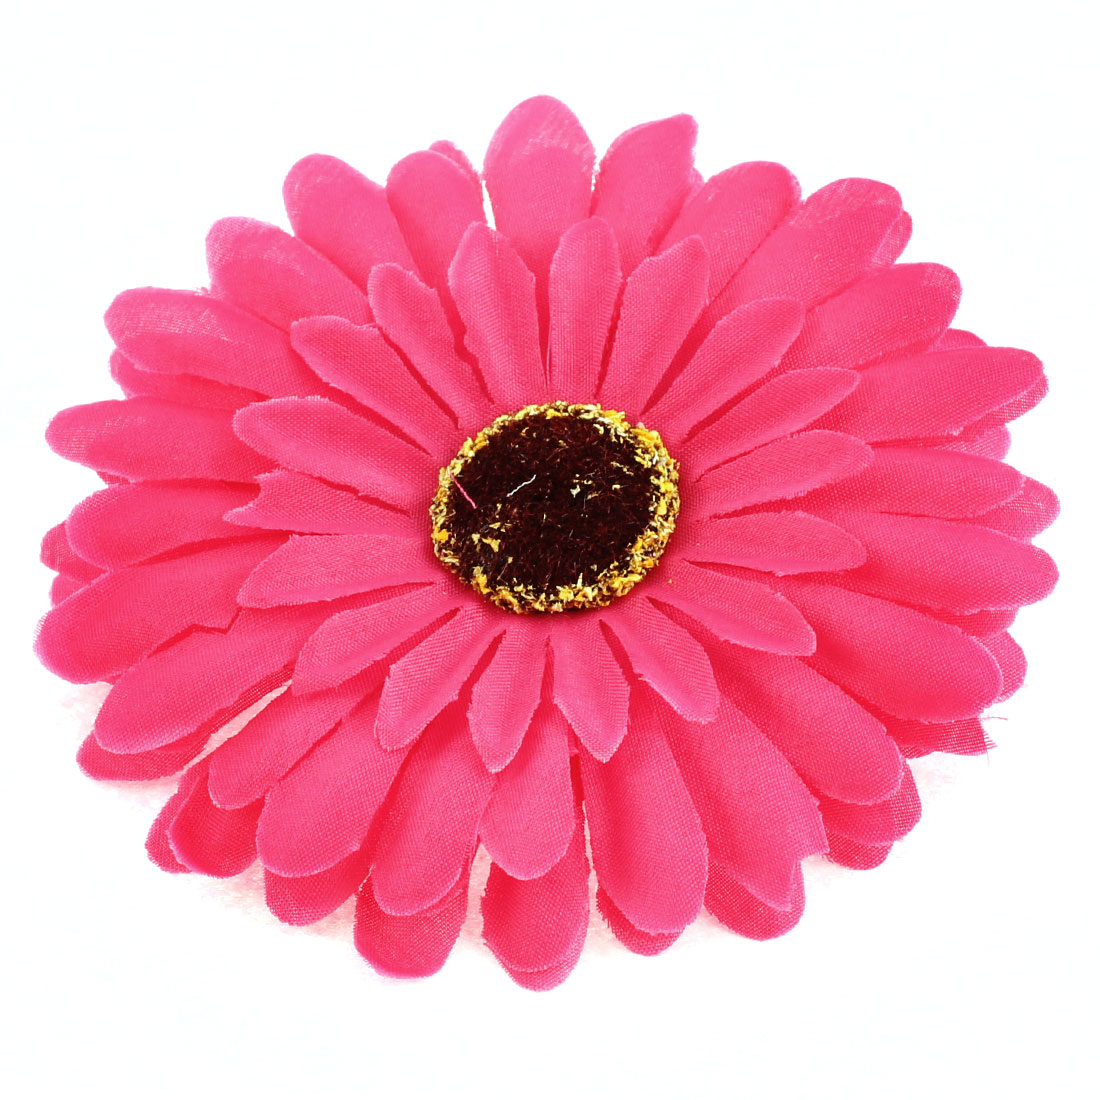 "Party Wedding Bride Artificial Daisy Flower Headwear Accessary 4"" Dia Fuchsia"